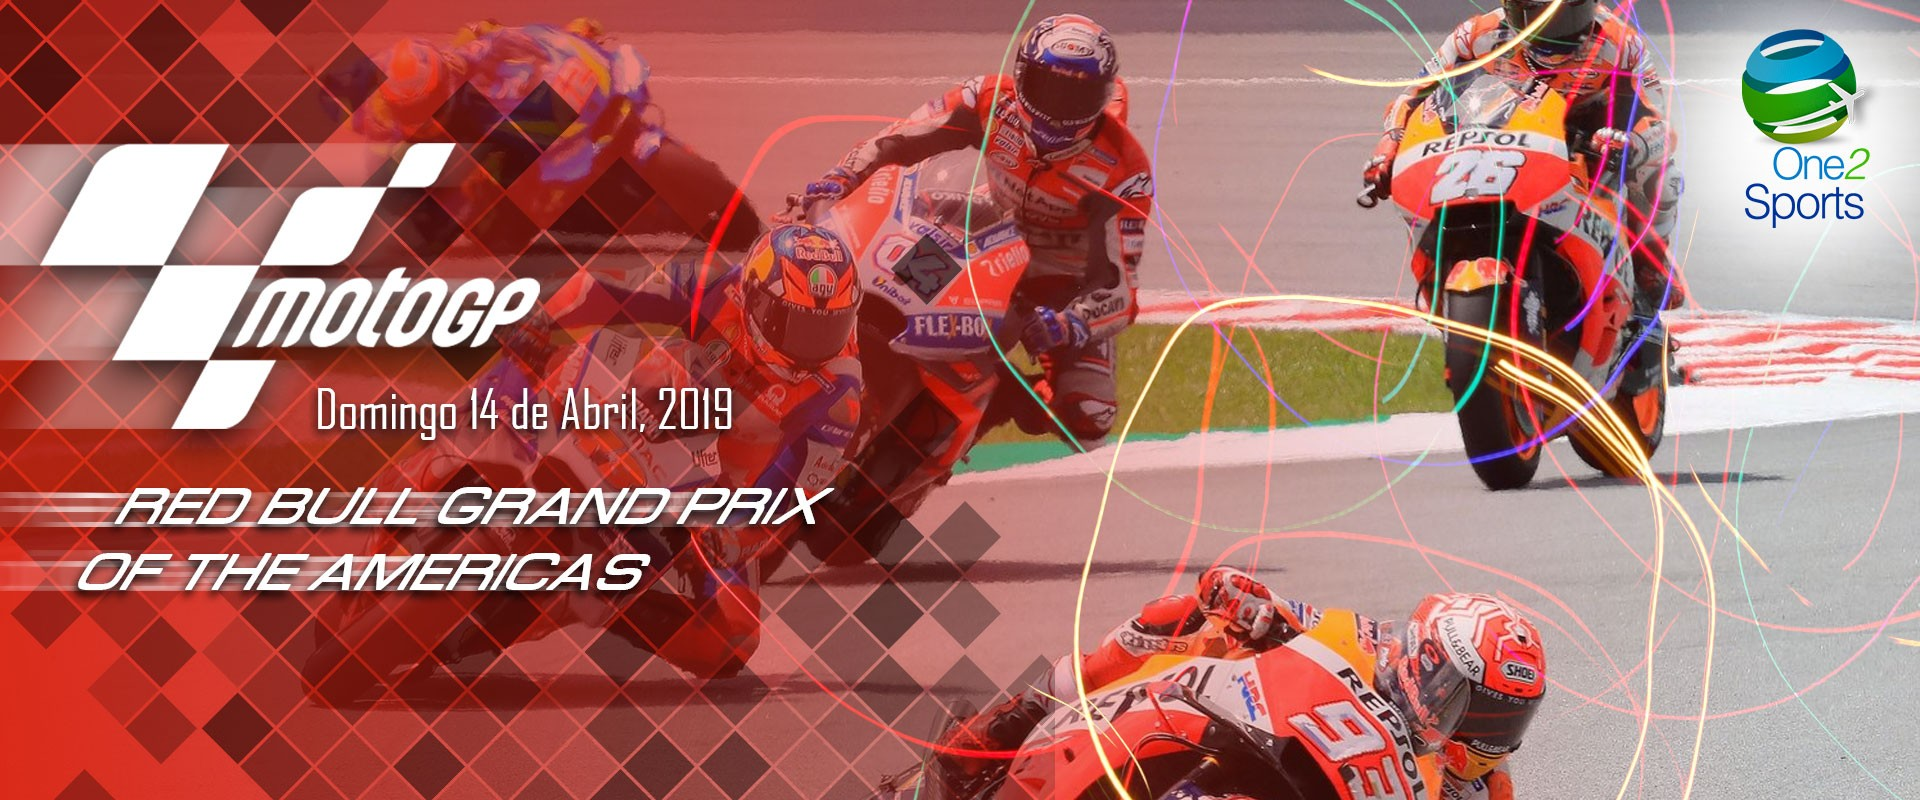 Moto GP Red Bull Grand Prix of The Americas